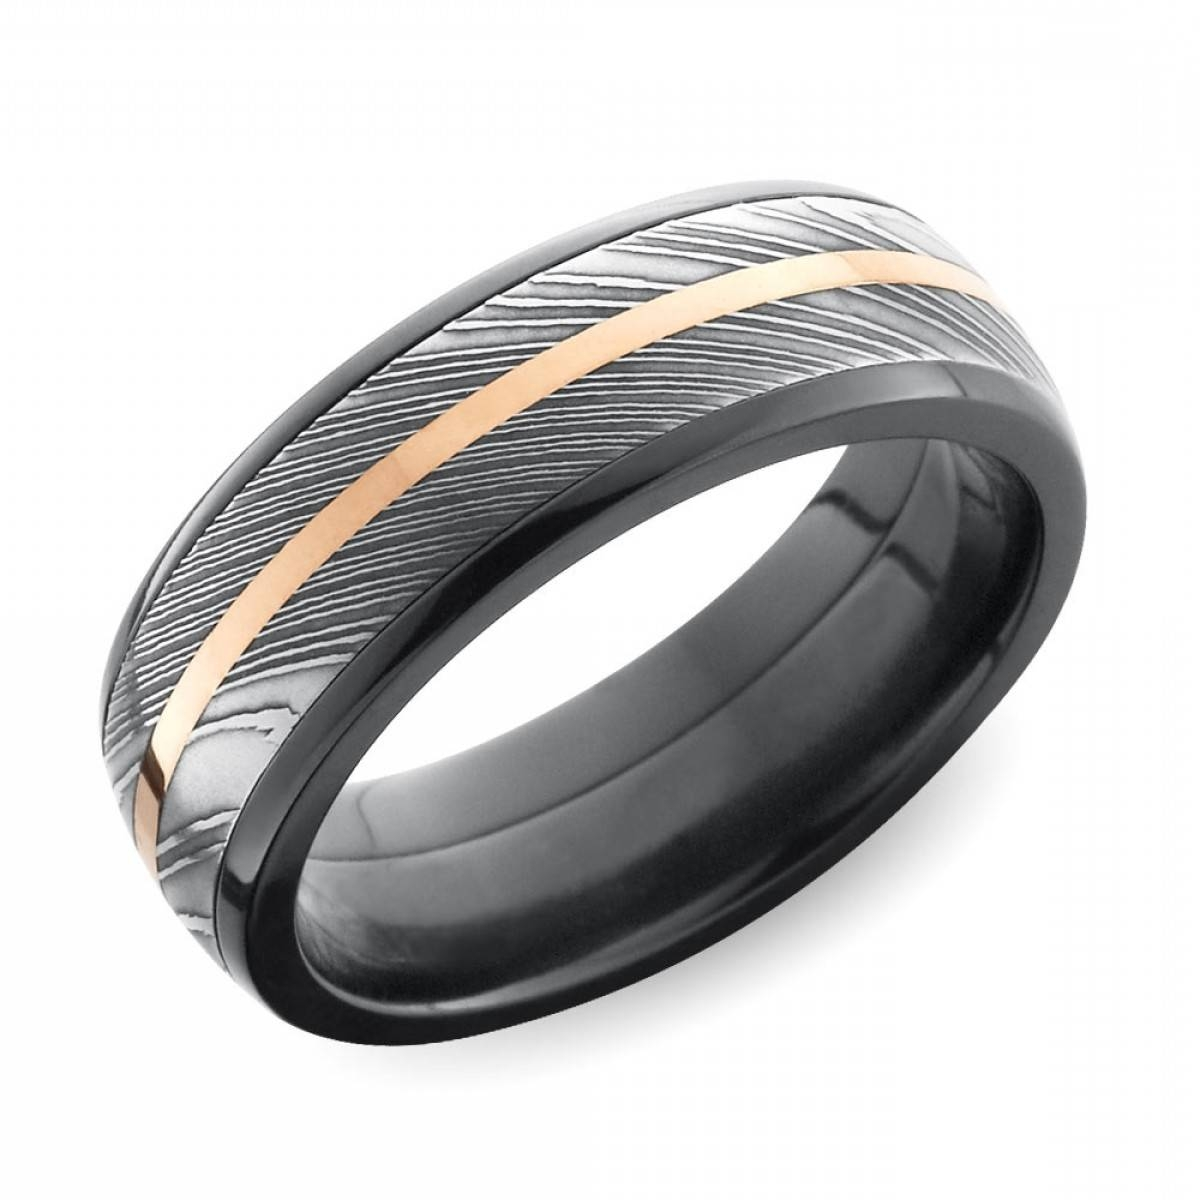 Cool Mens Wedding Rings That Defy Tradition | Oblacoder Inside Cool Mens Wedding Bands (View 14 of 15)